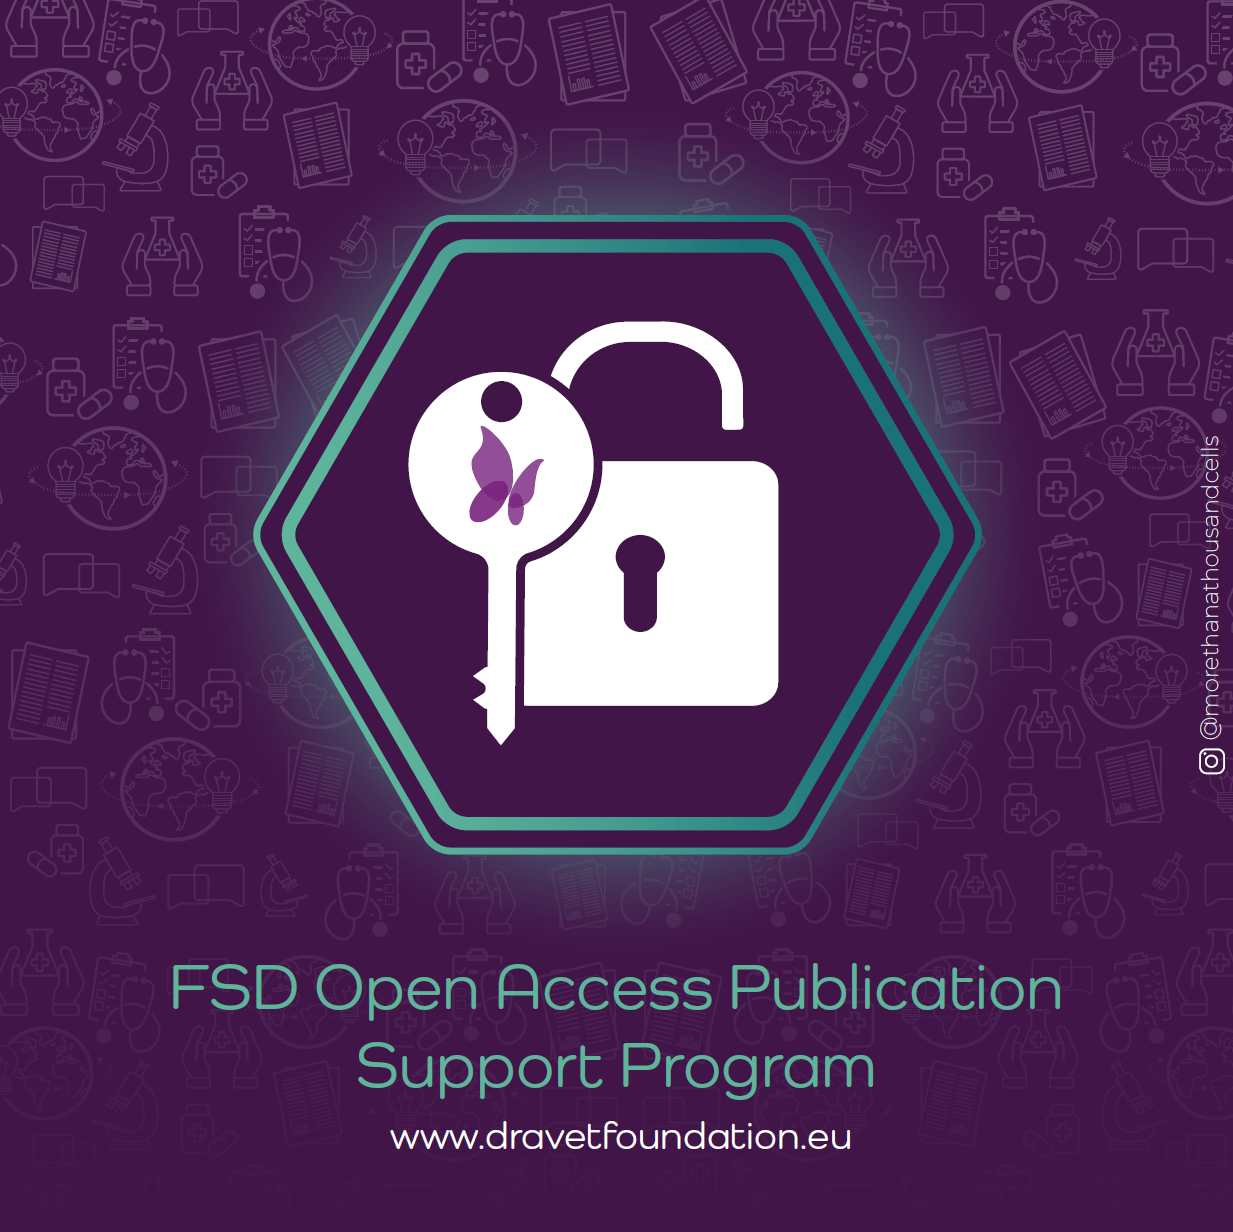 FSD Open-Access Publication Support Program